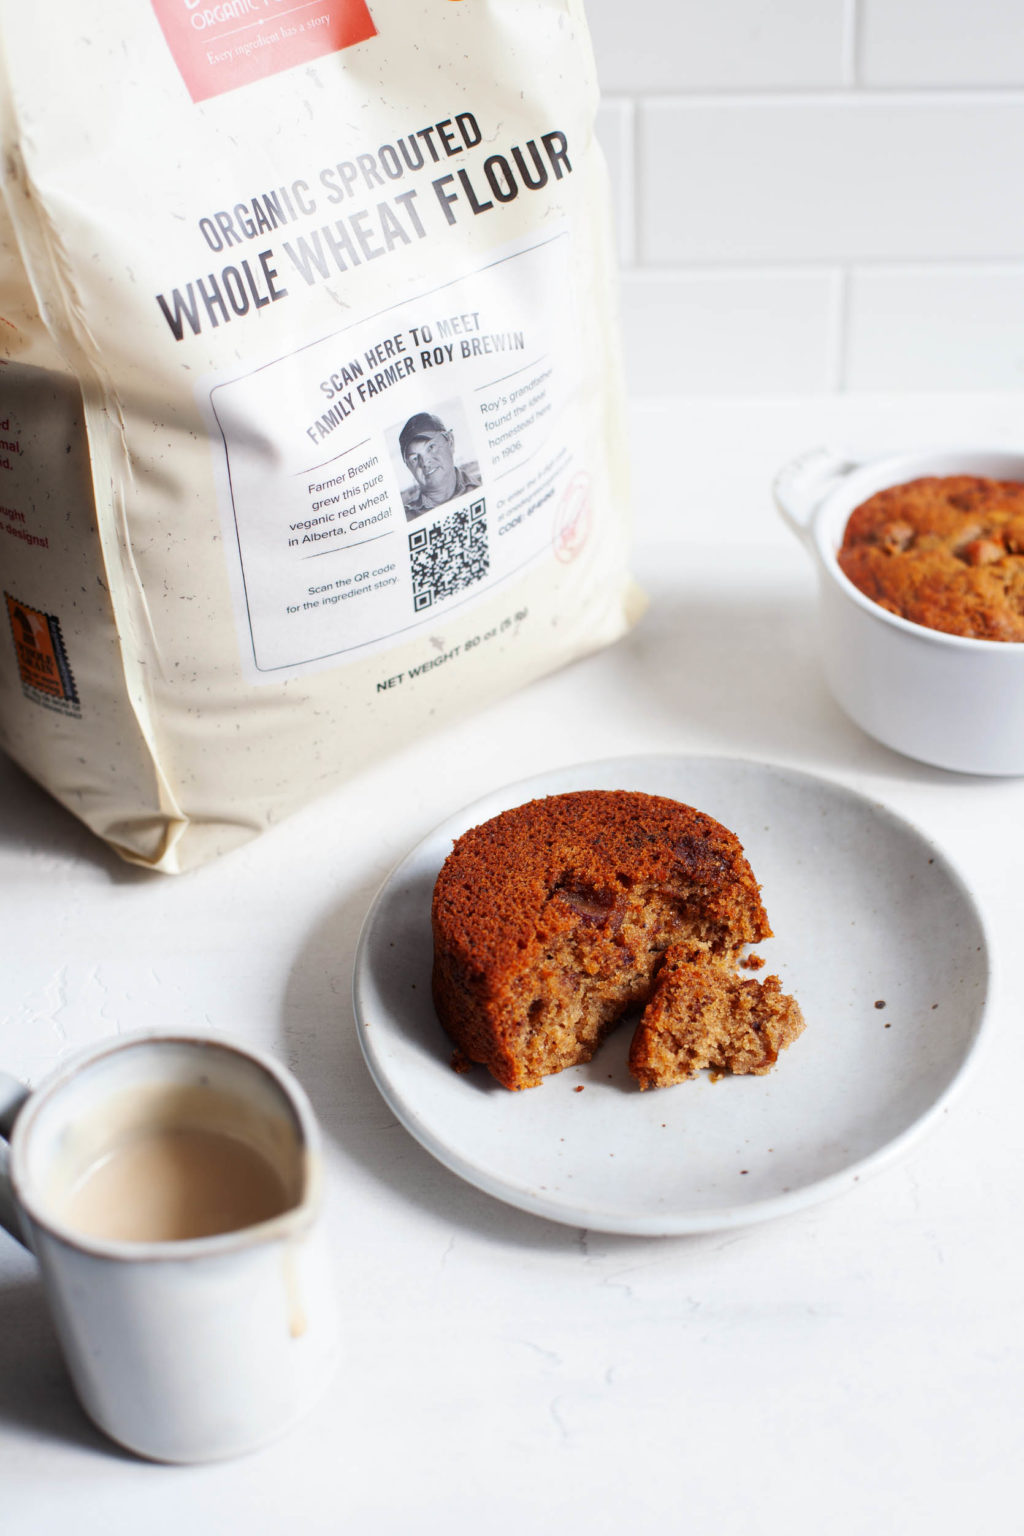 A bag of whole grain flour has been used to make a few small, round cakes, which are positioned on dessert plates.